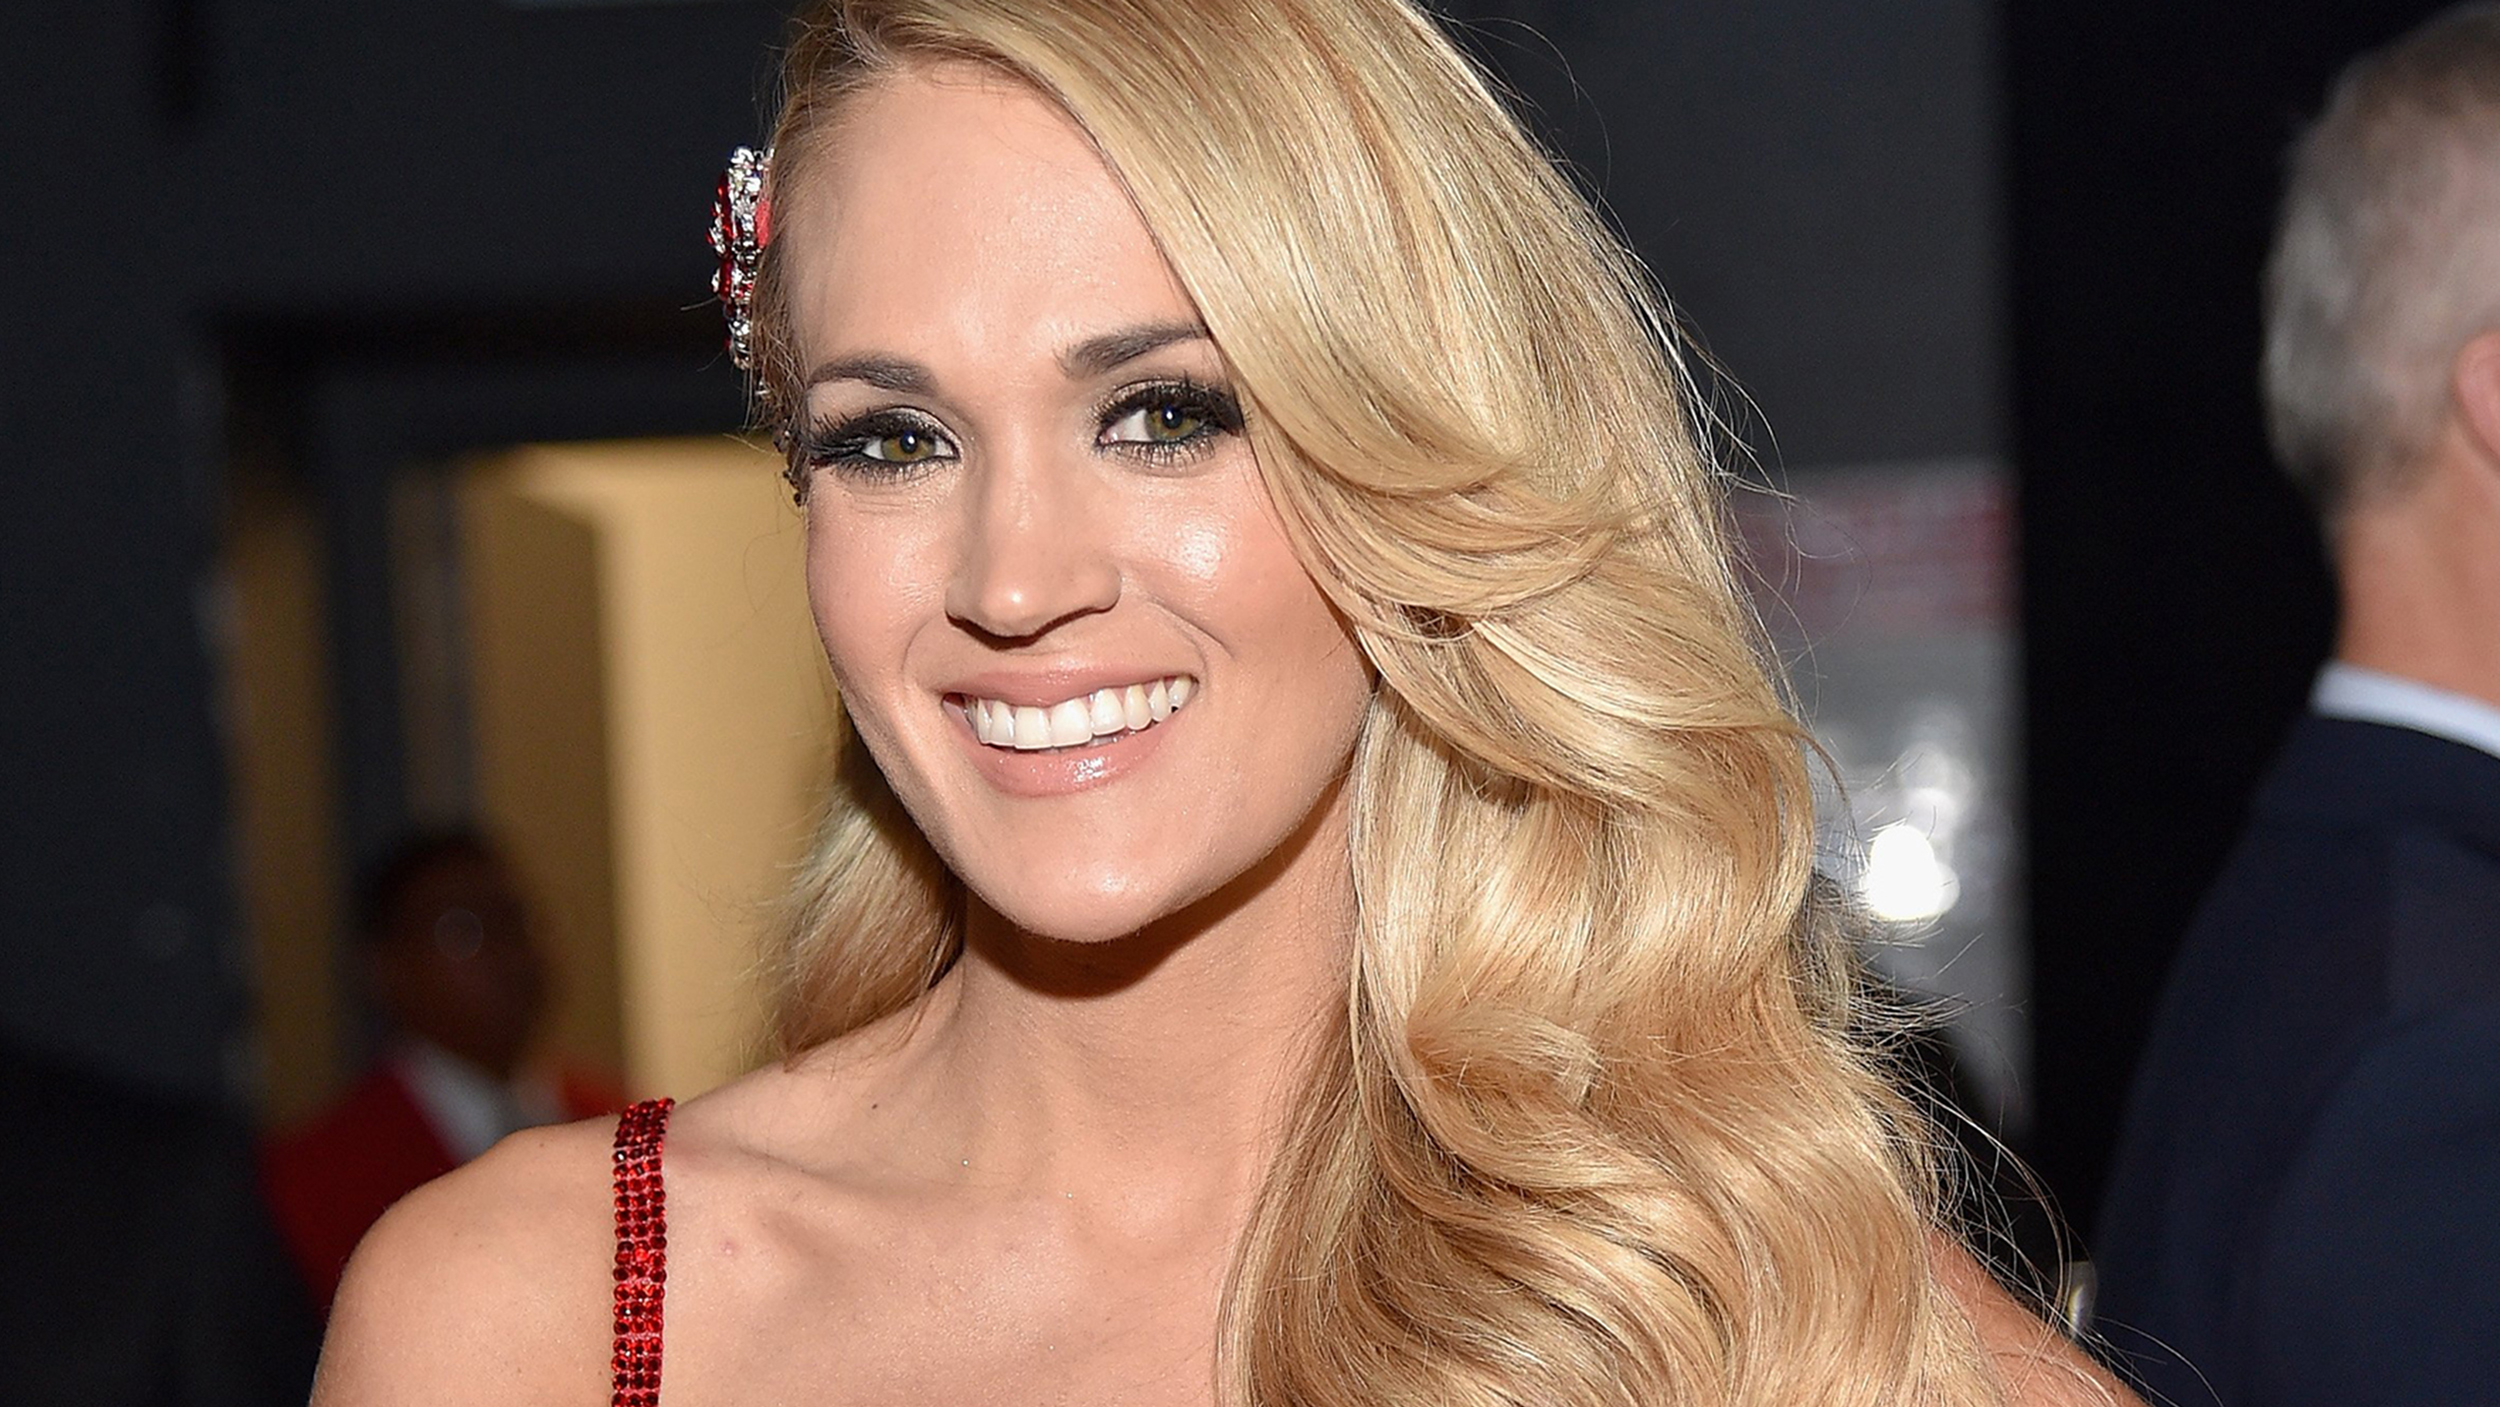 Carrie Underwood Debuts Shorter Trendy Lob Haircut On